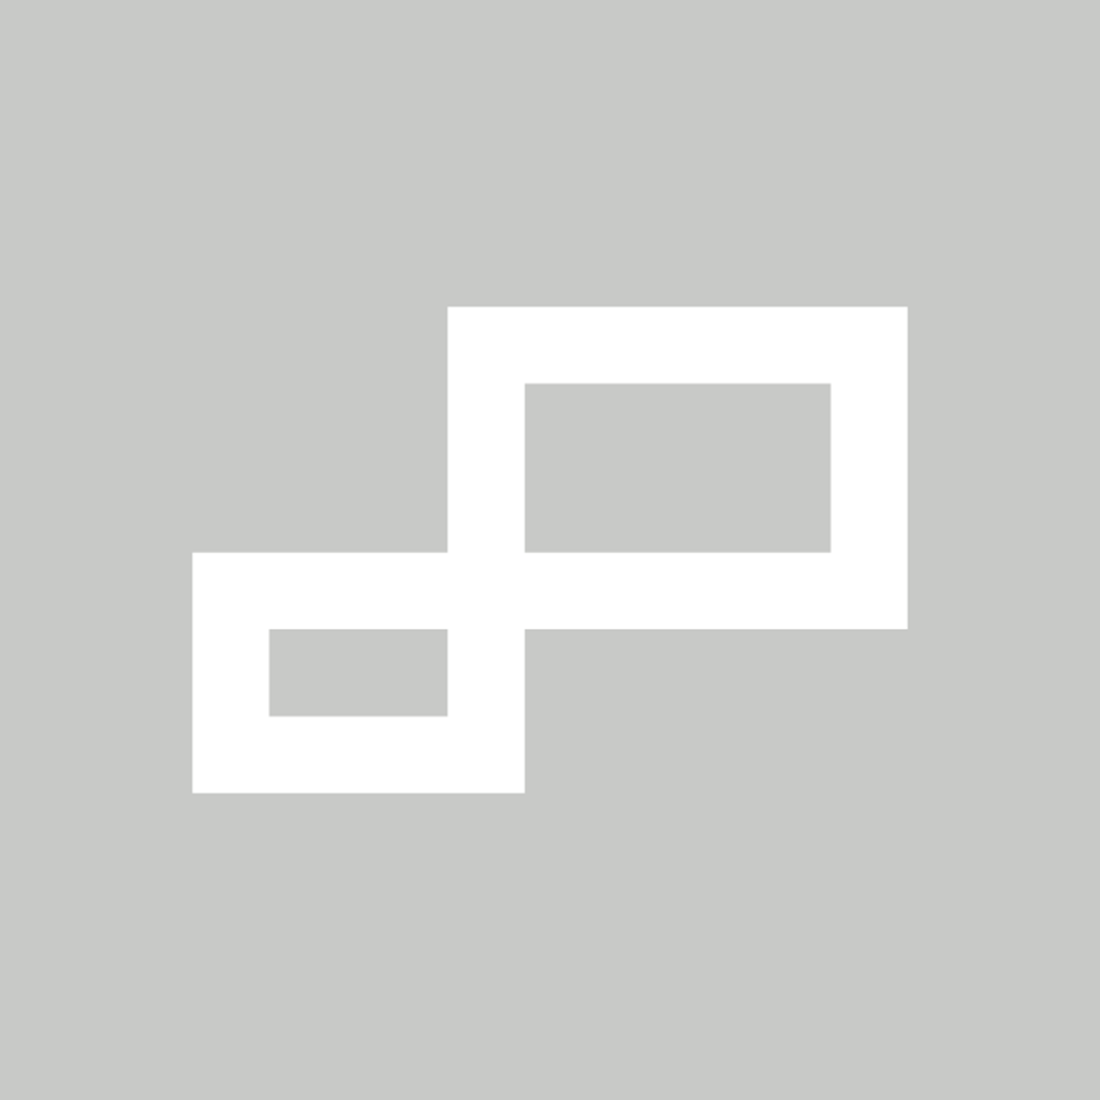 ZC10L Pack of 400 Cards, Non-Slotted, Color Ribbon Included